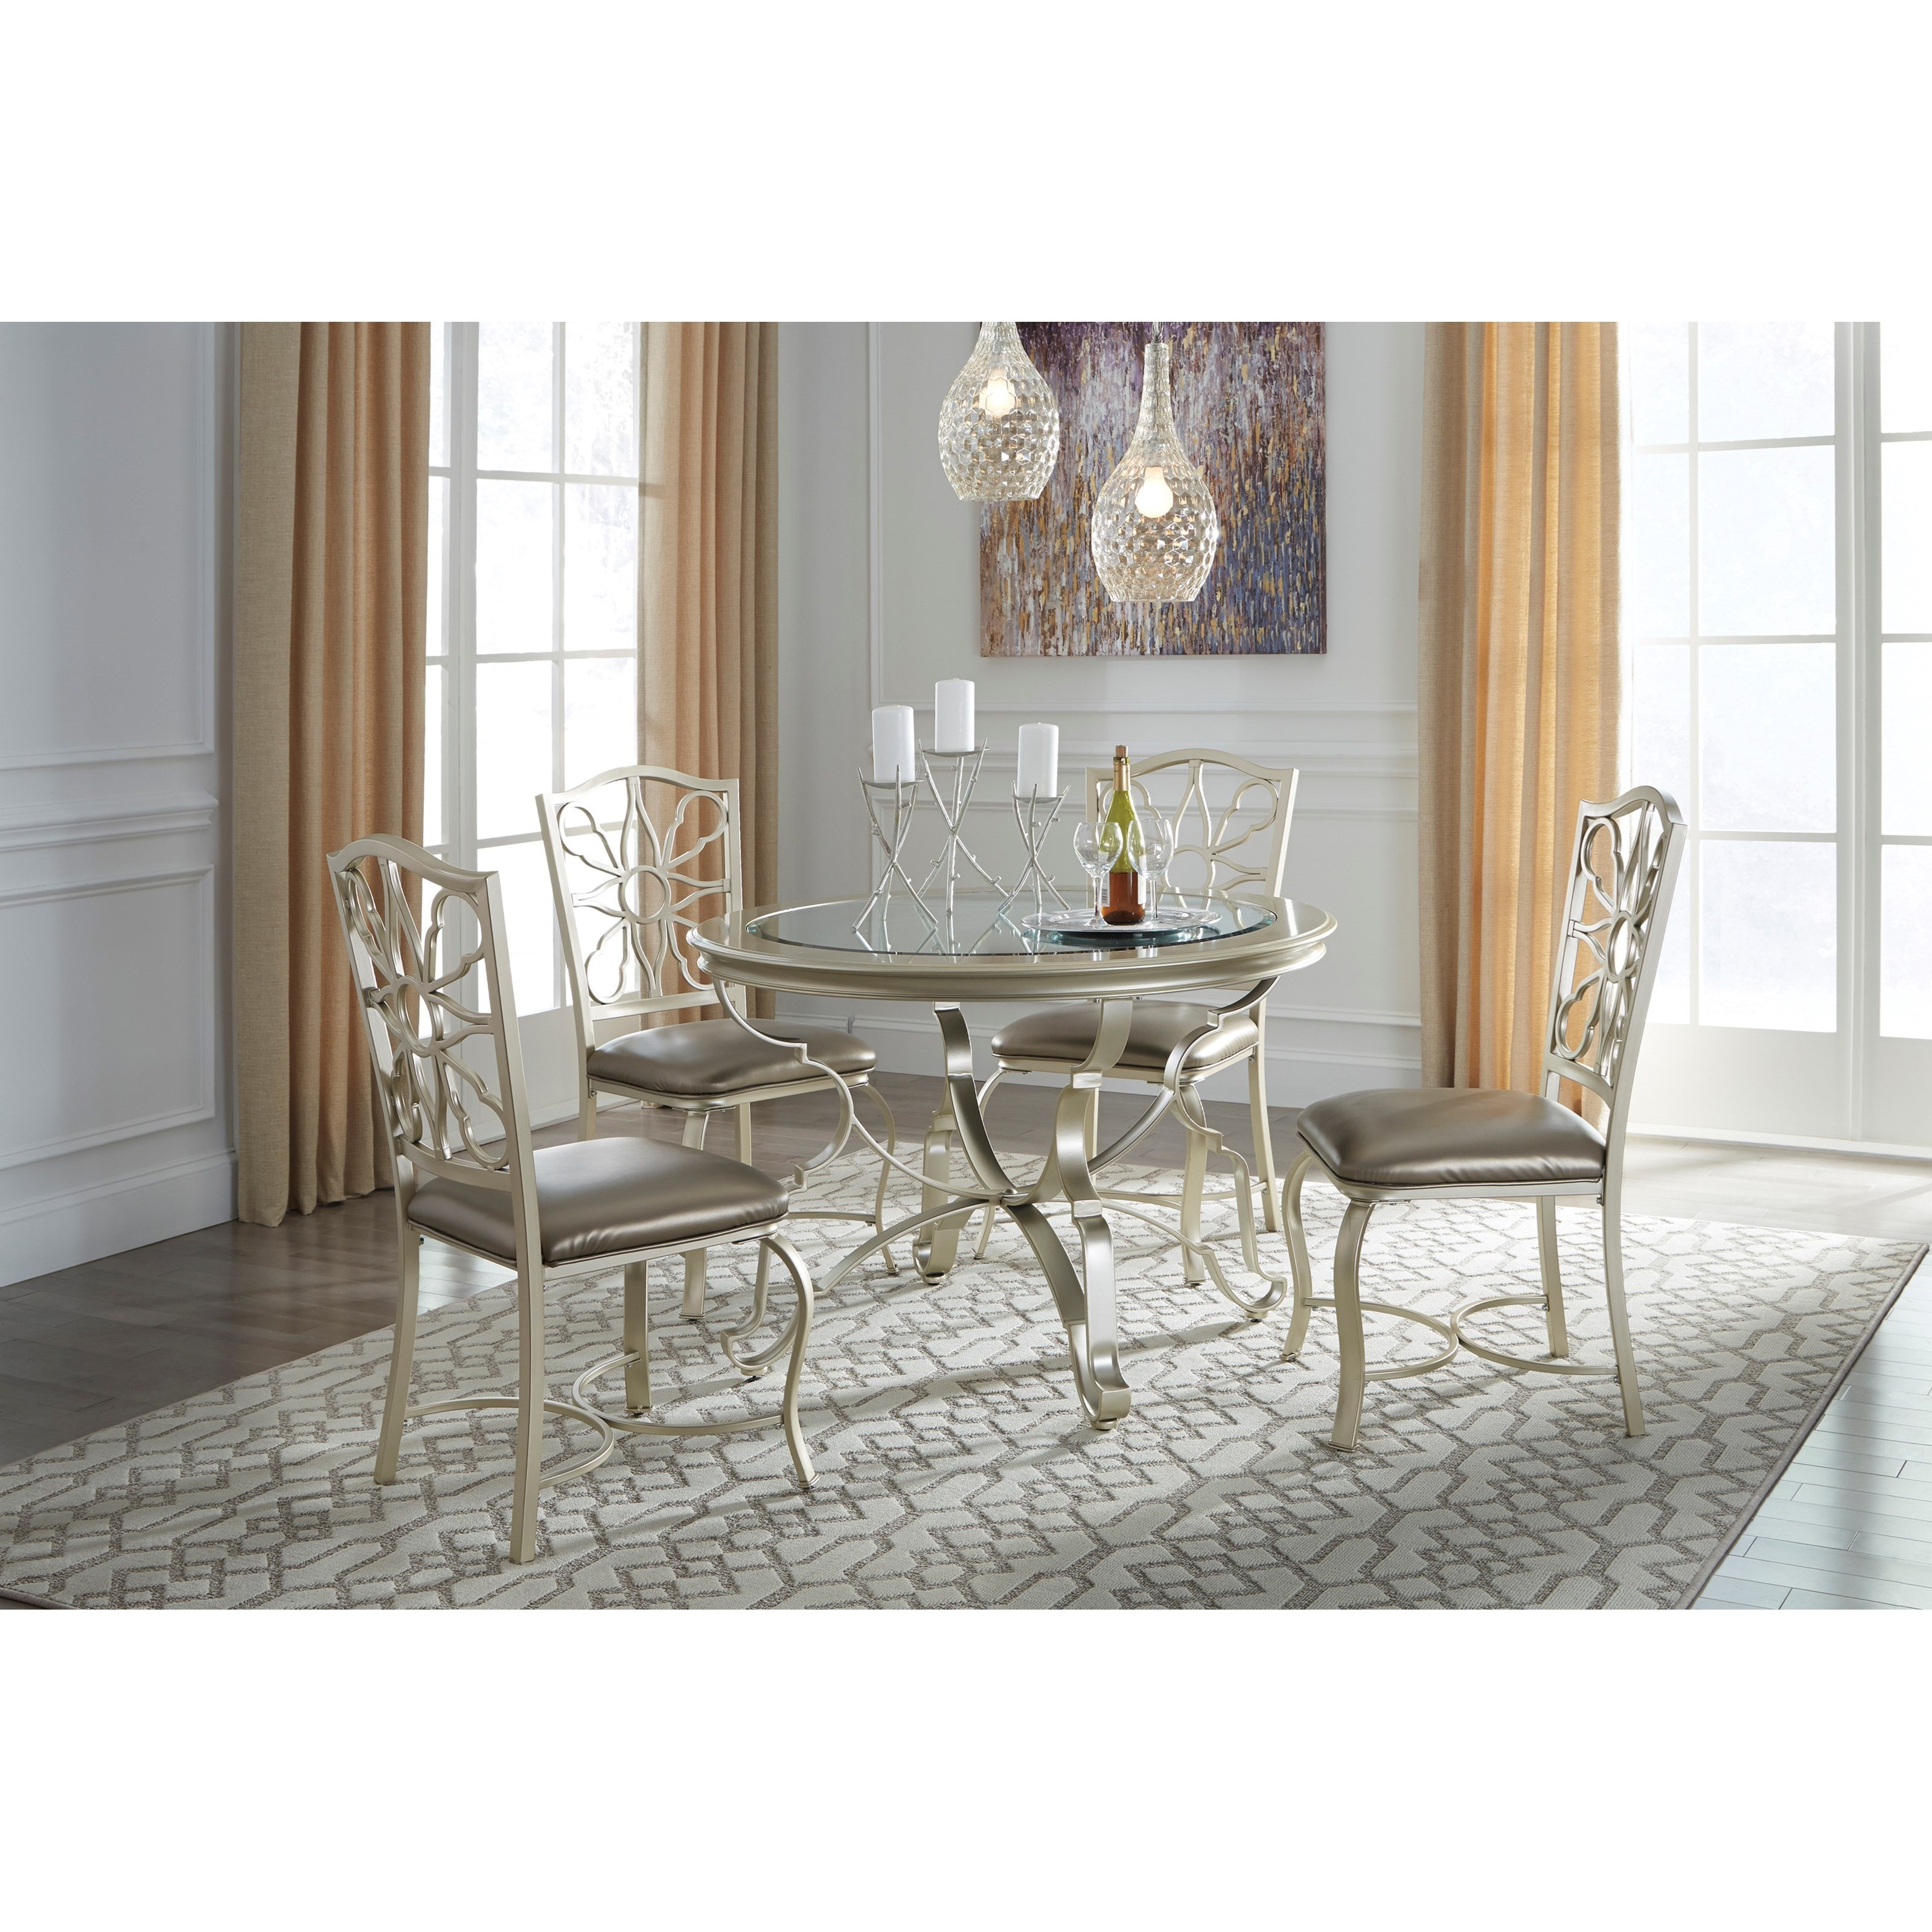 Signature design by ashley shollyn silver finish round for Best dining room table finish